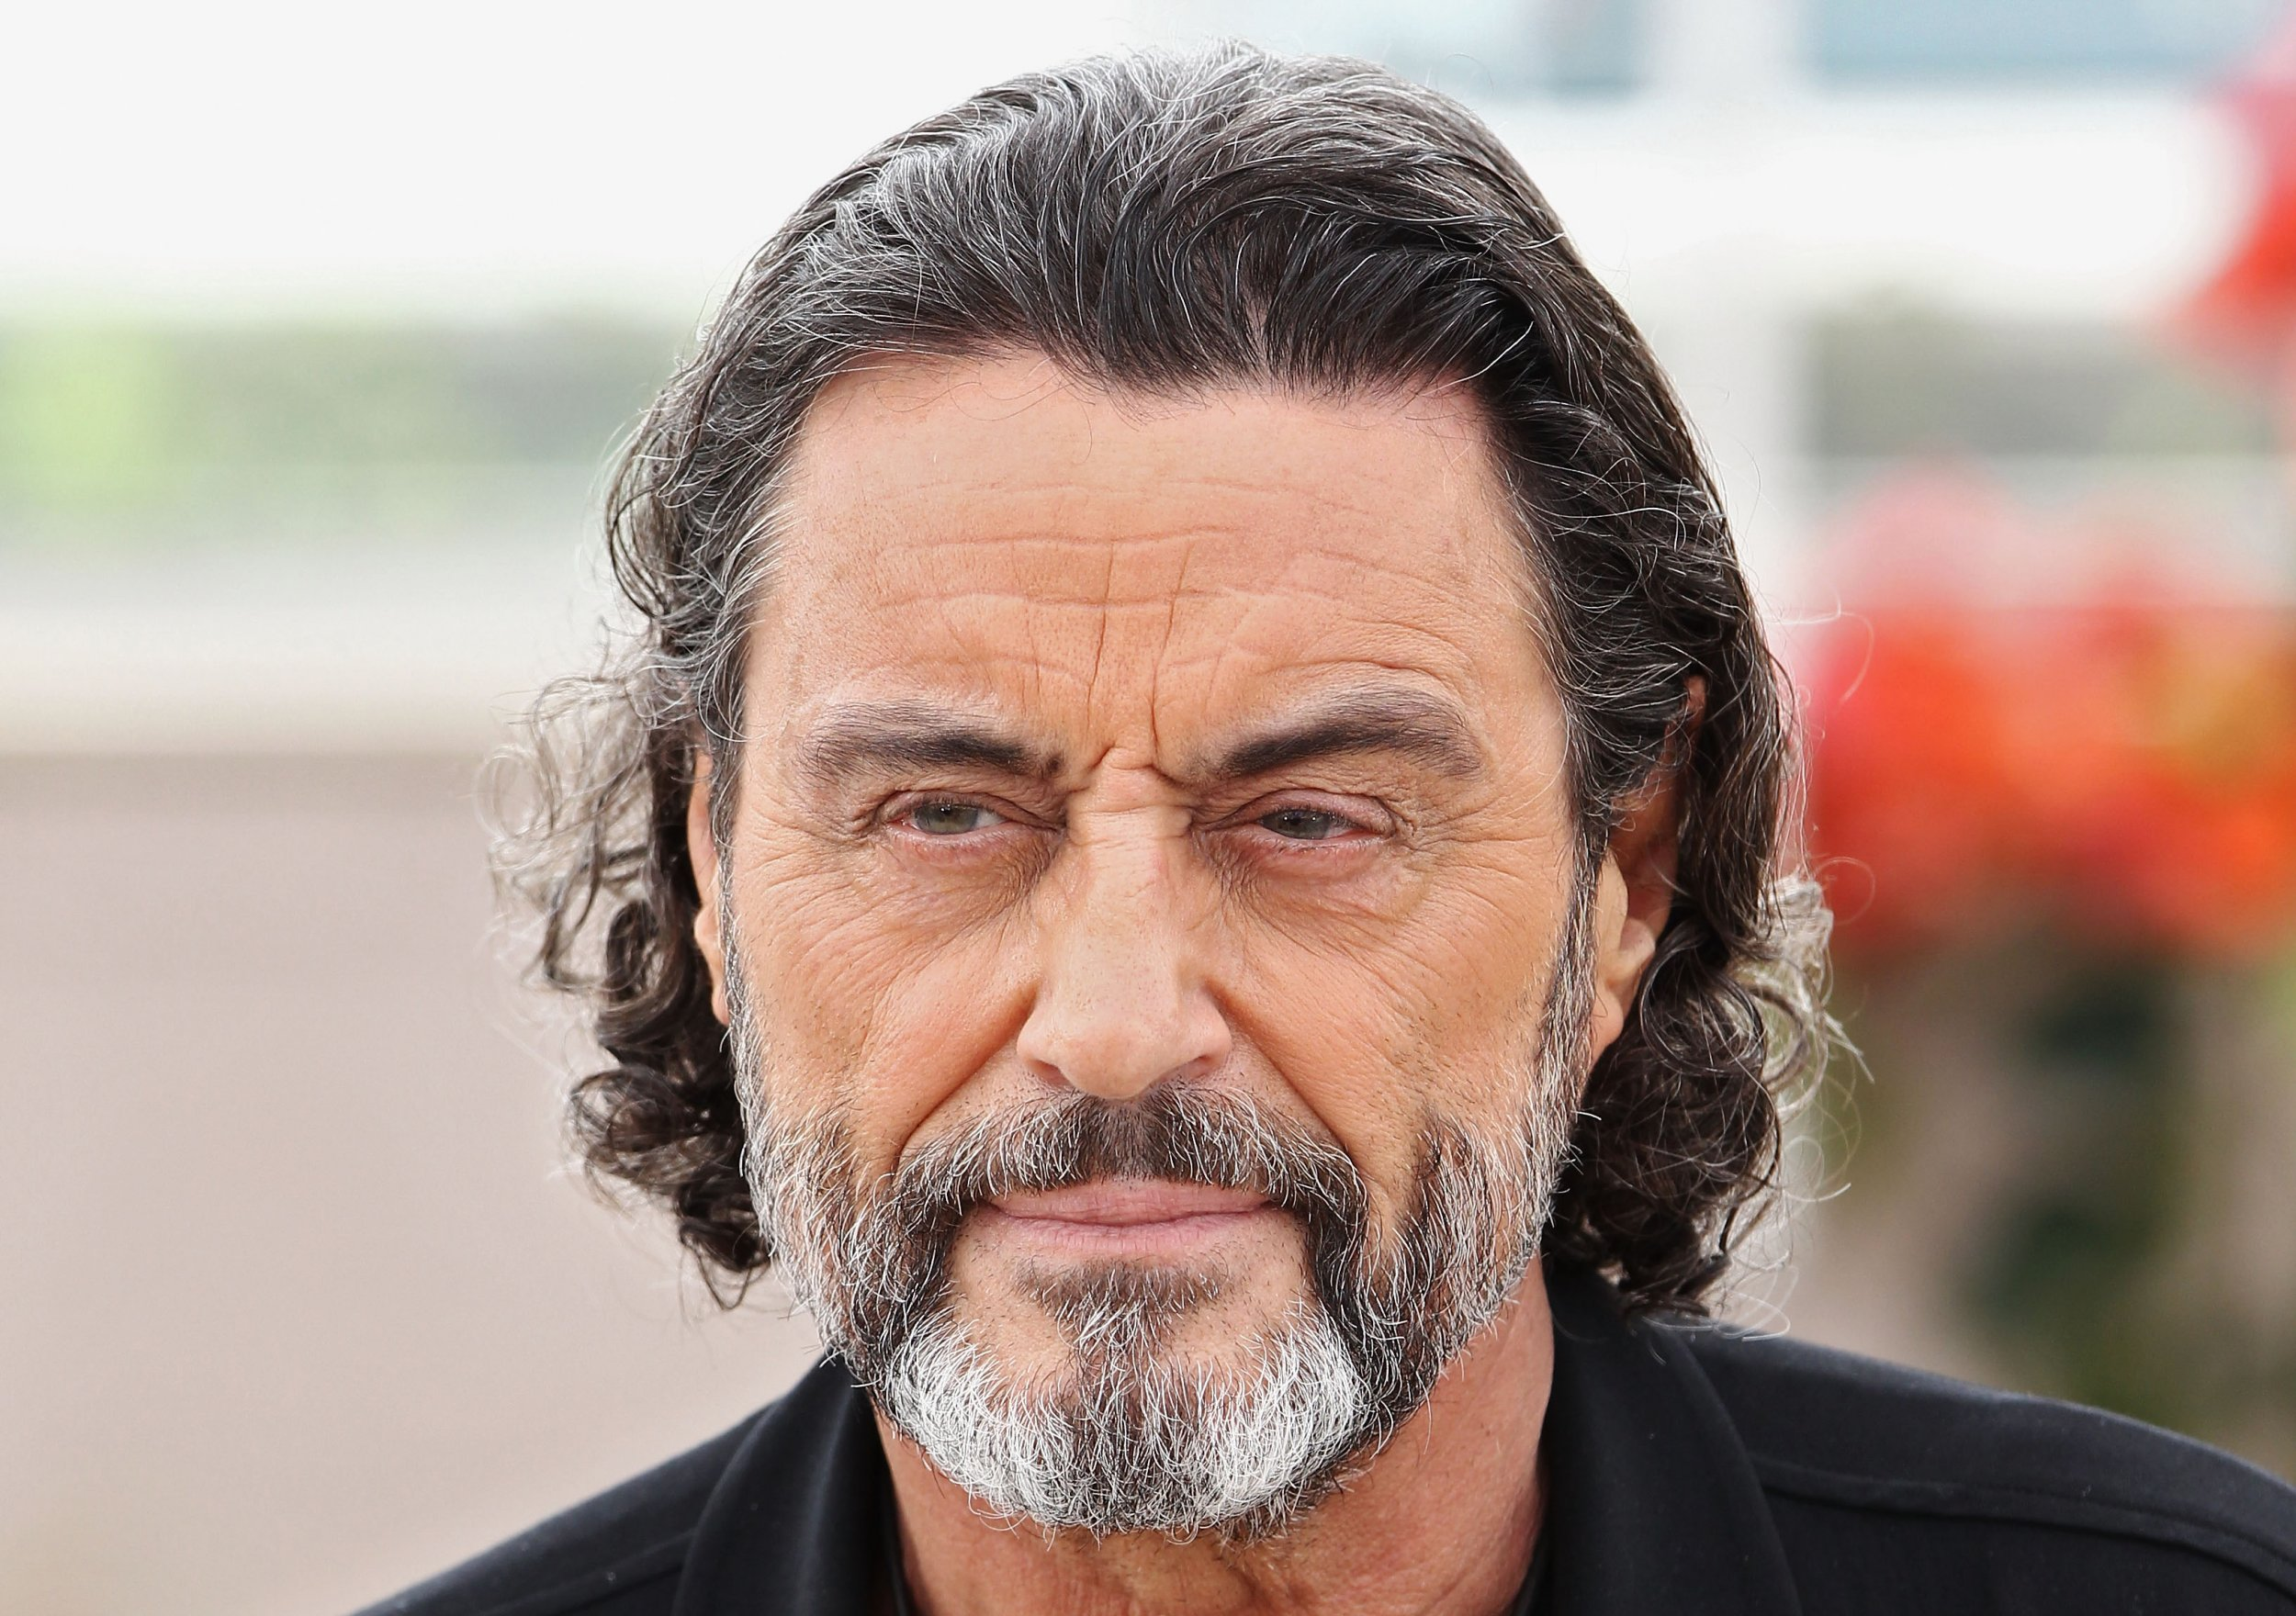 Ian McShane at Cannes in 2011